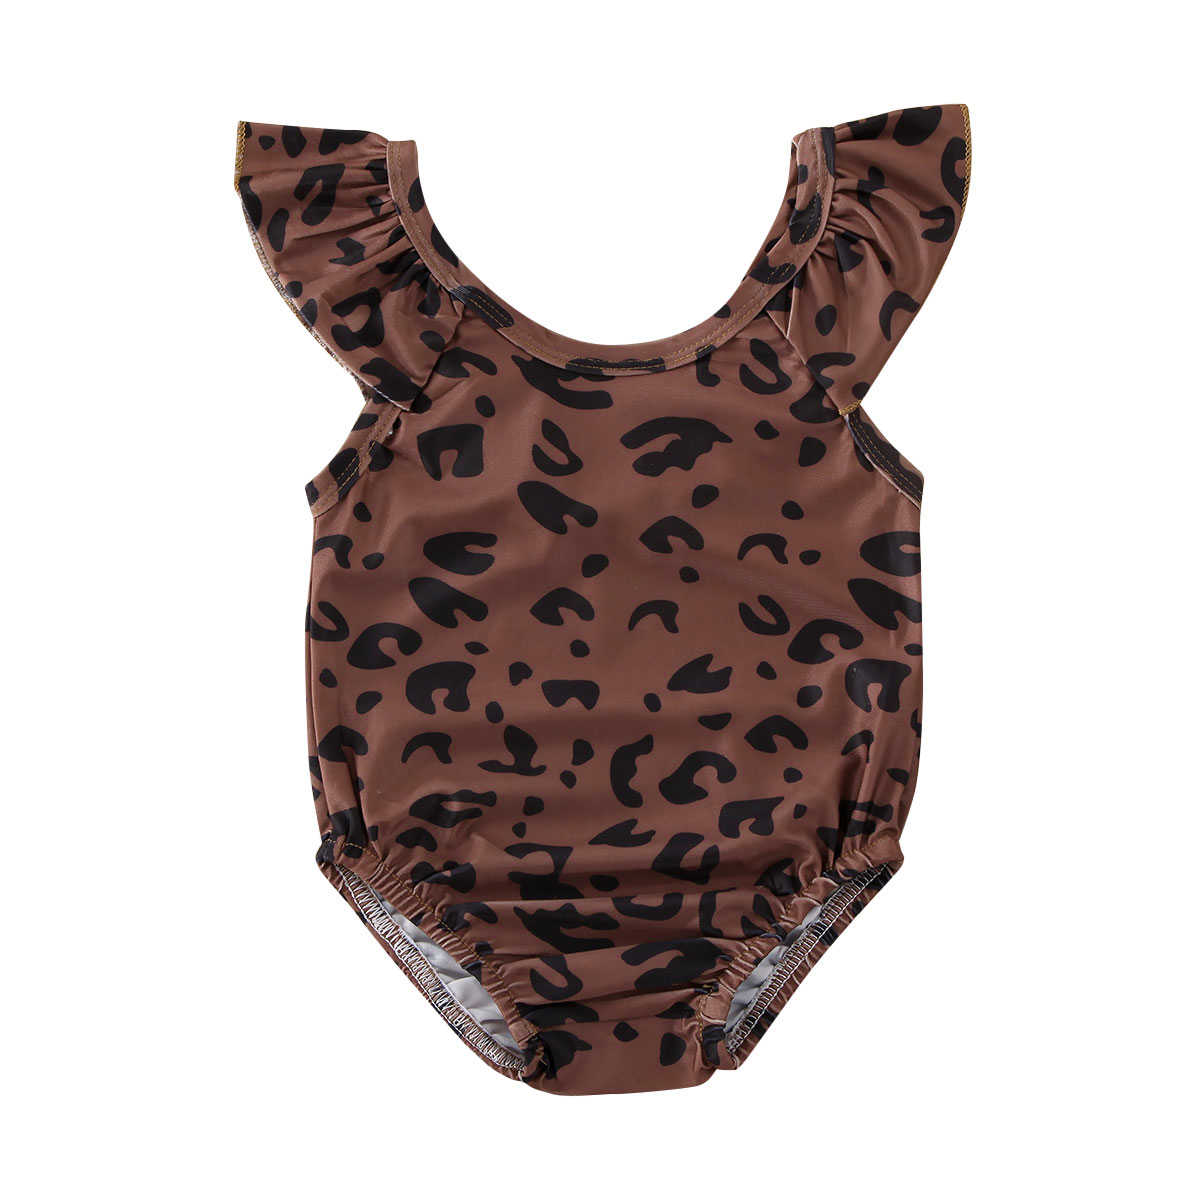 2020 Summer Swimsuit Kids Baby Girl Leopard print Swimming Costume One Piece Swimwear Outfits